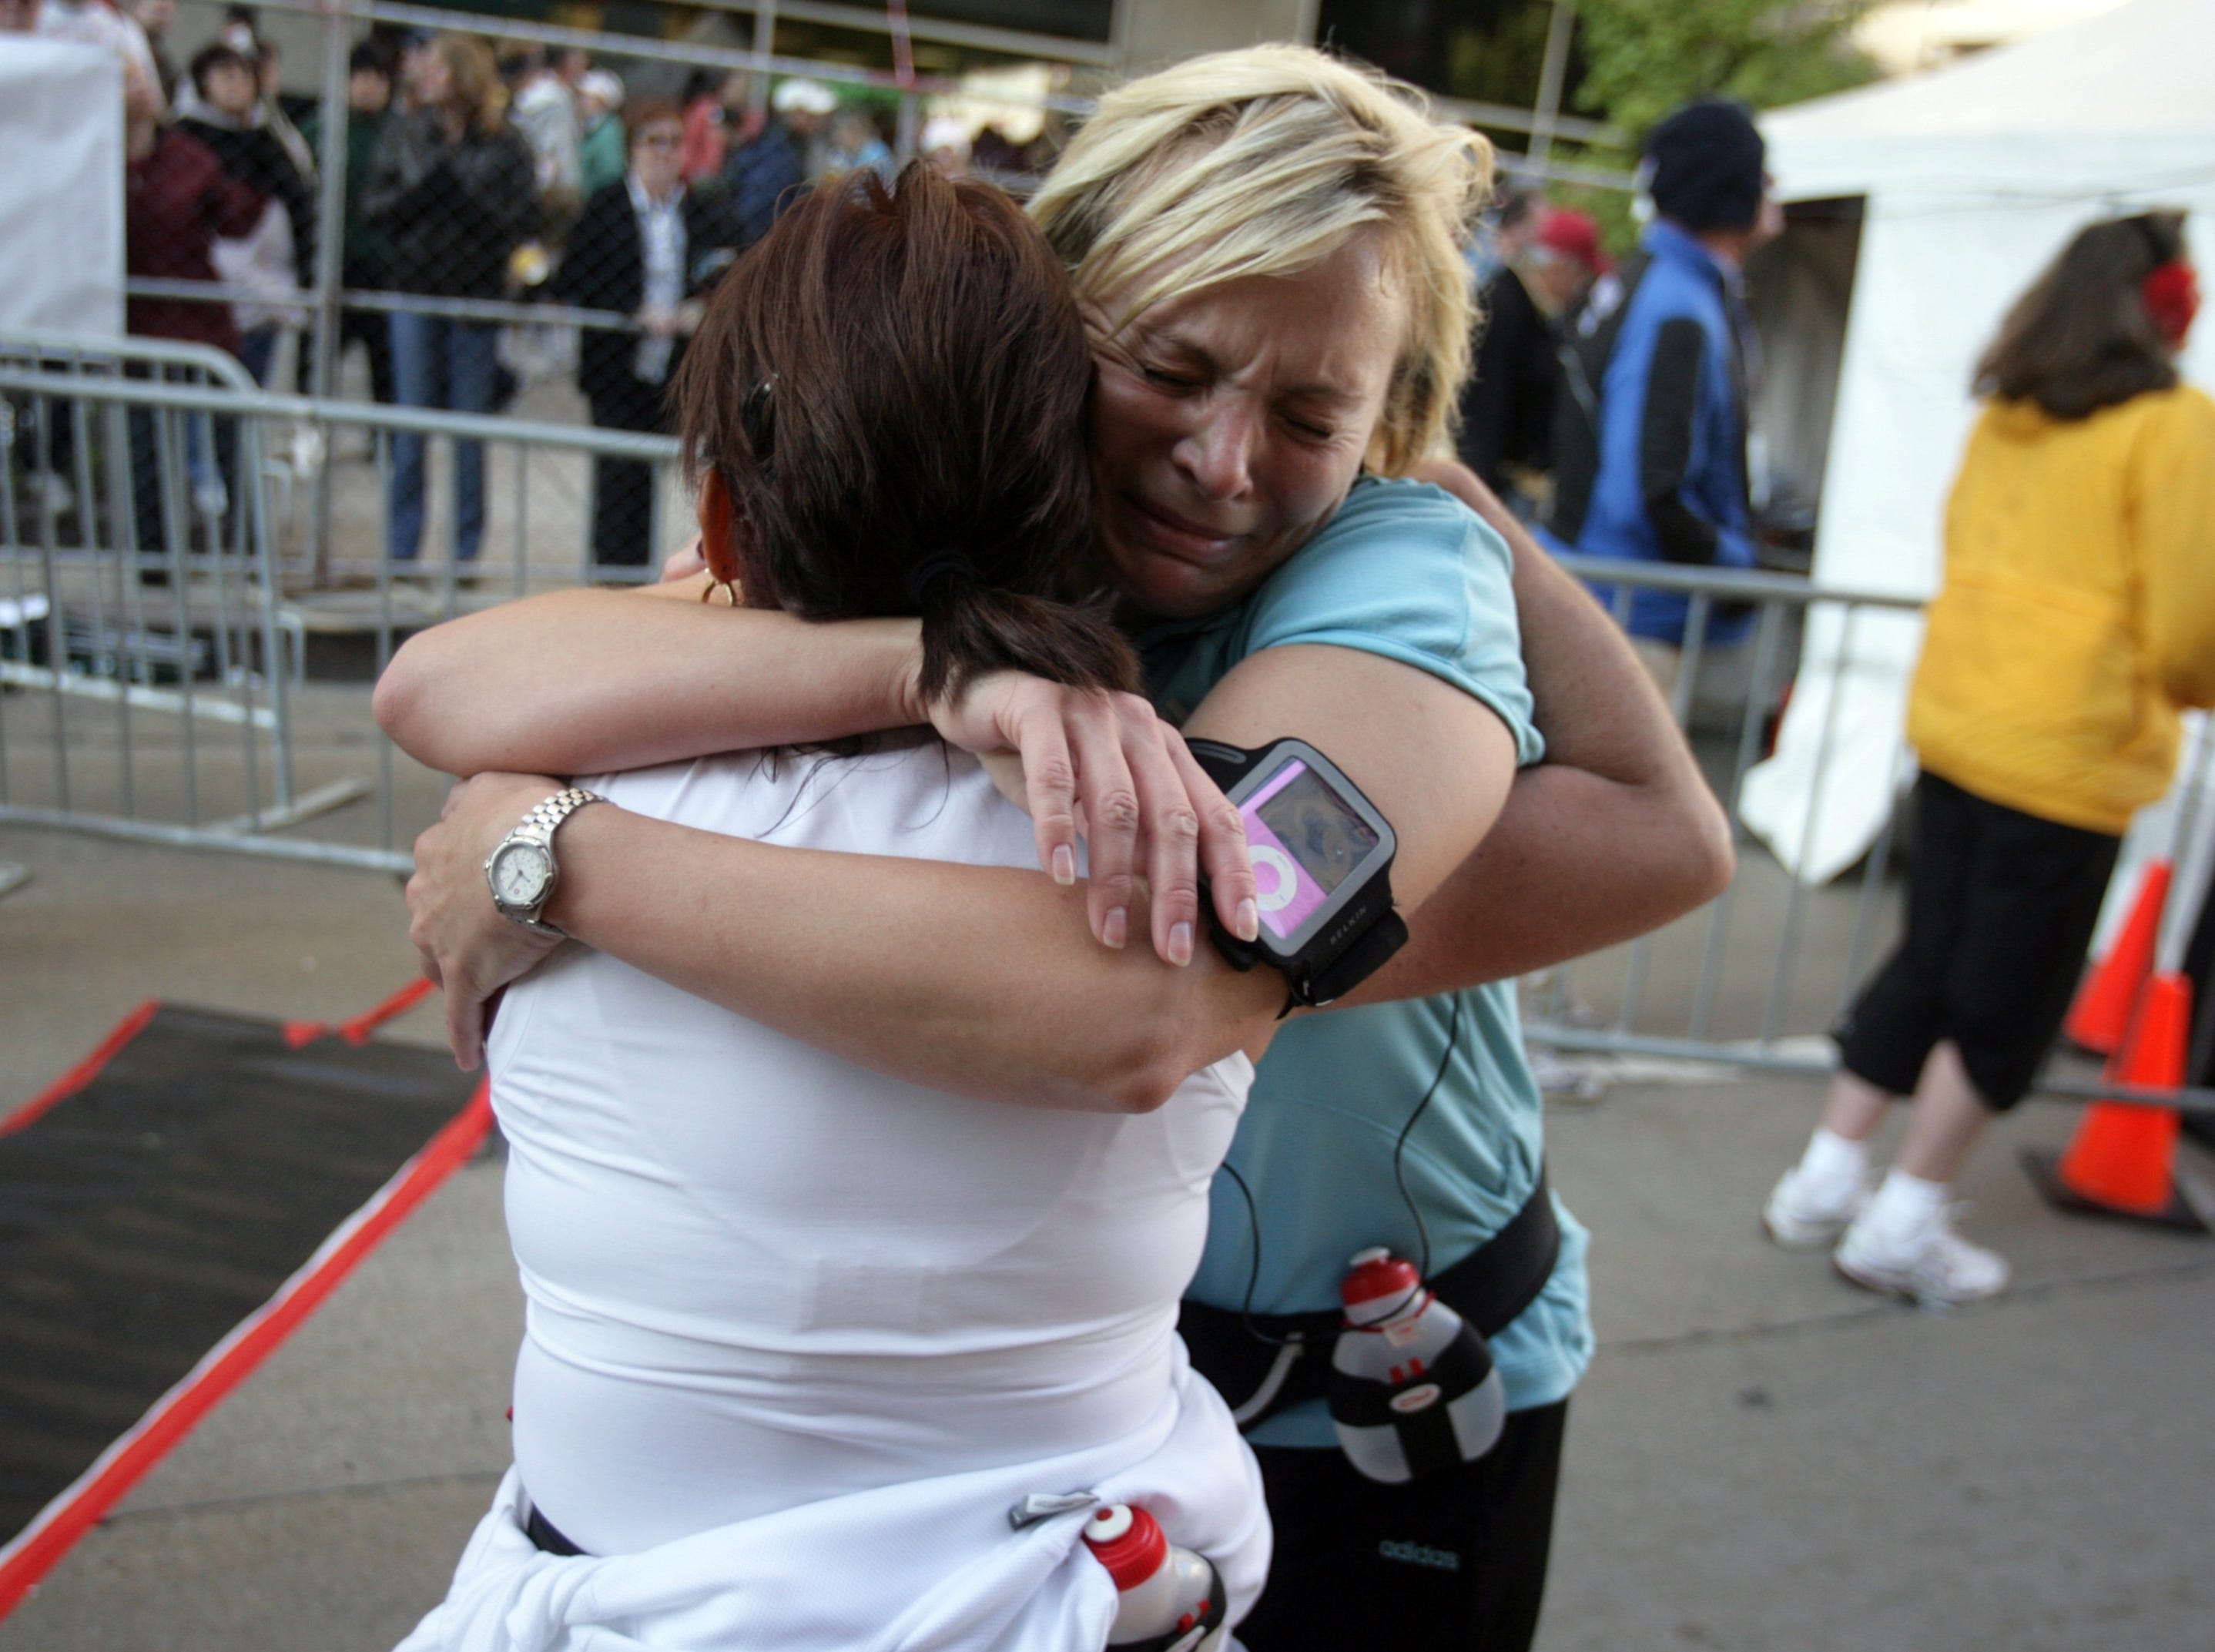 Cathy Vilag CQrr and Ena Monteleone, both of Amherstburg, Ontario hug each other at the finish line of the Detroit Free Press/Flagstar Marathon on Sunday, October 19, 2008 in Detroit.